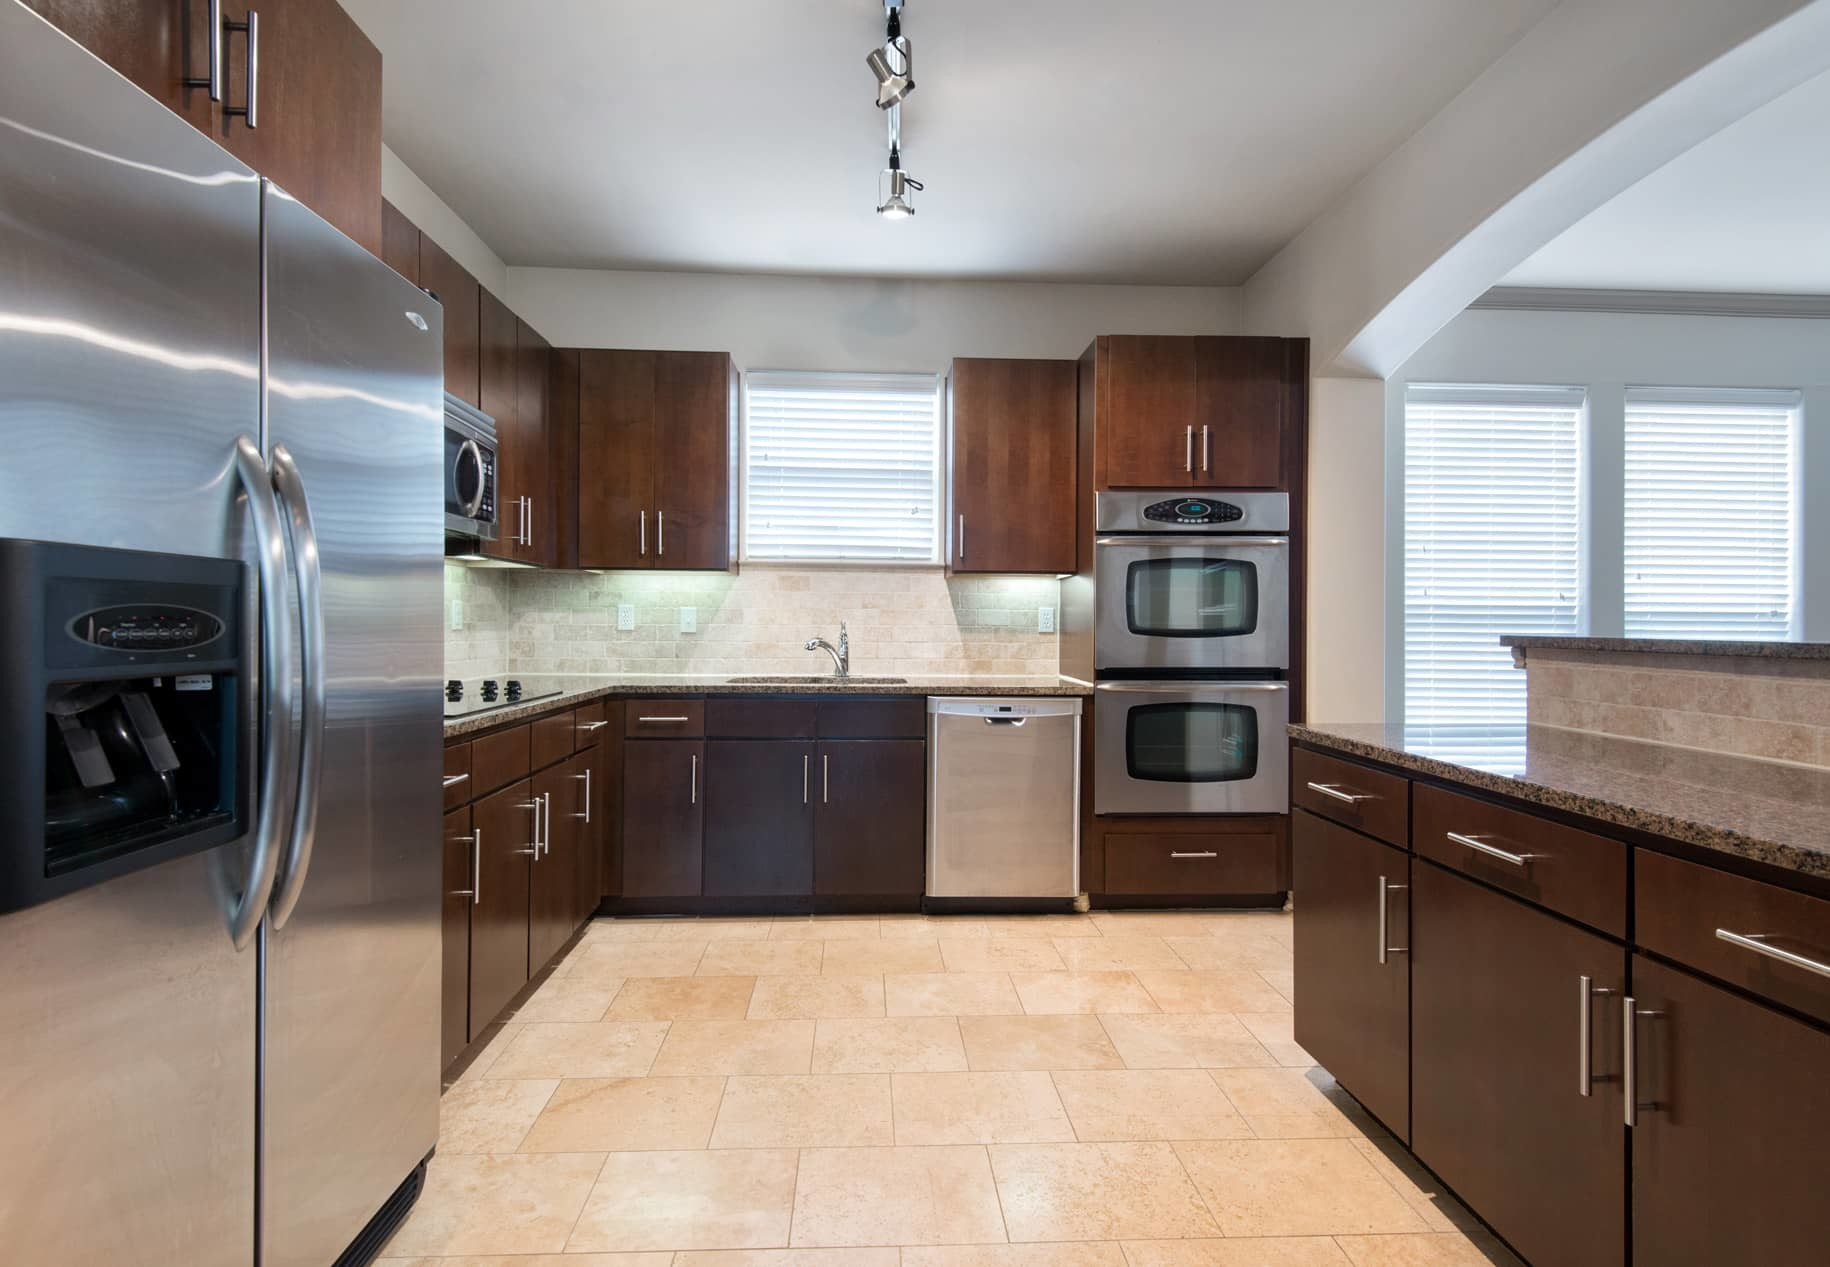 2 Beds, 2.5 Baths apartment in Braintree for $3,637